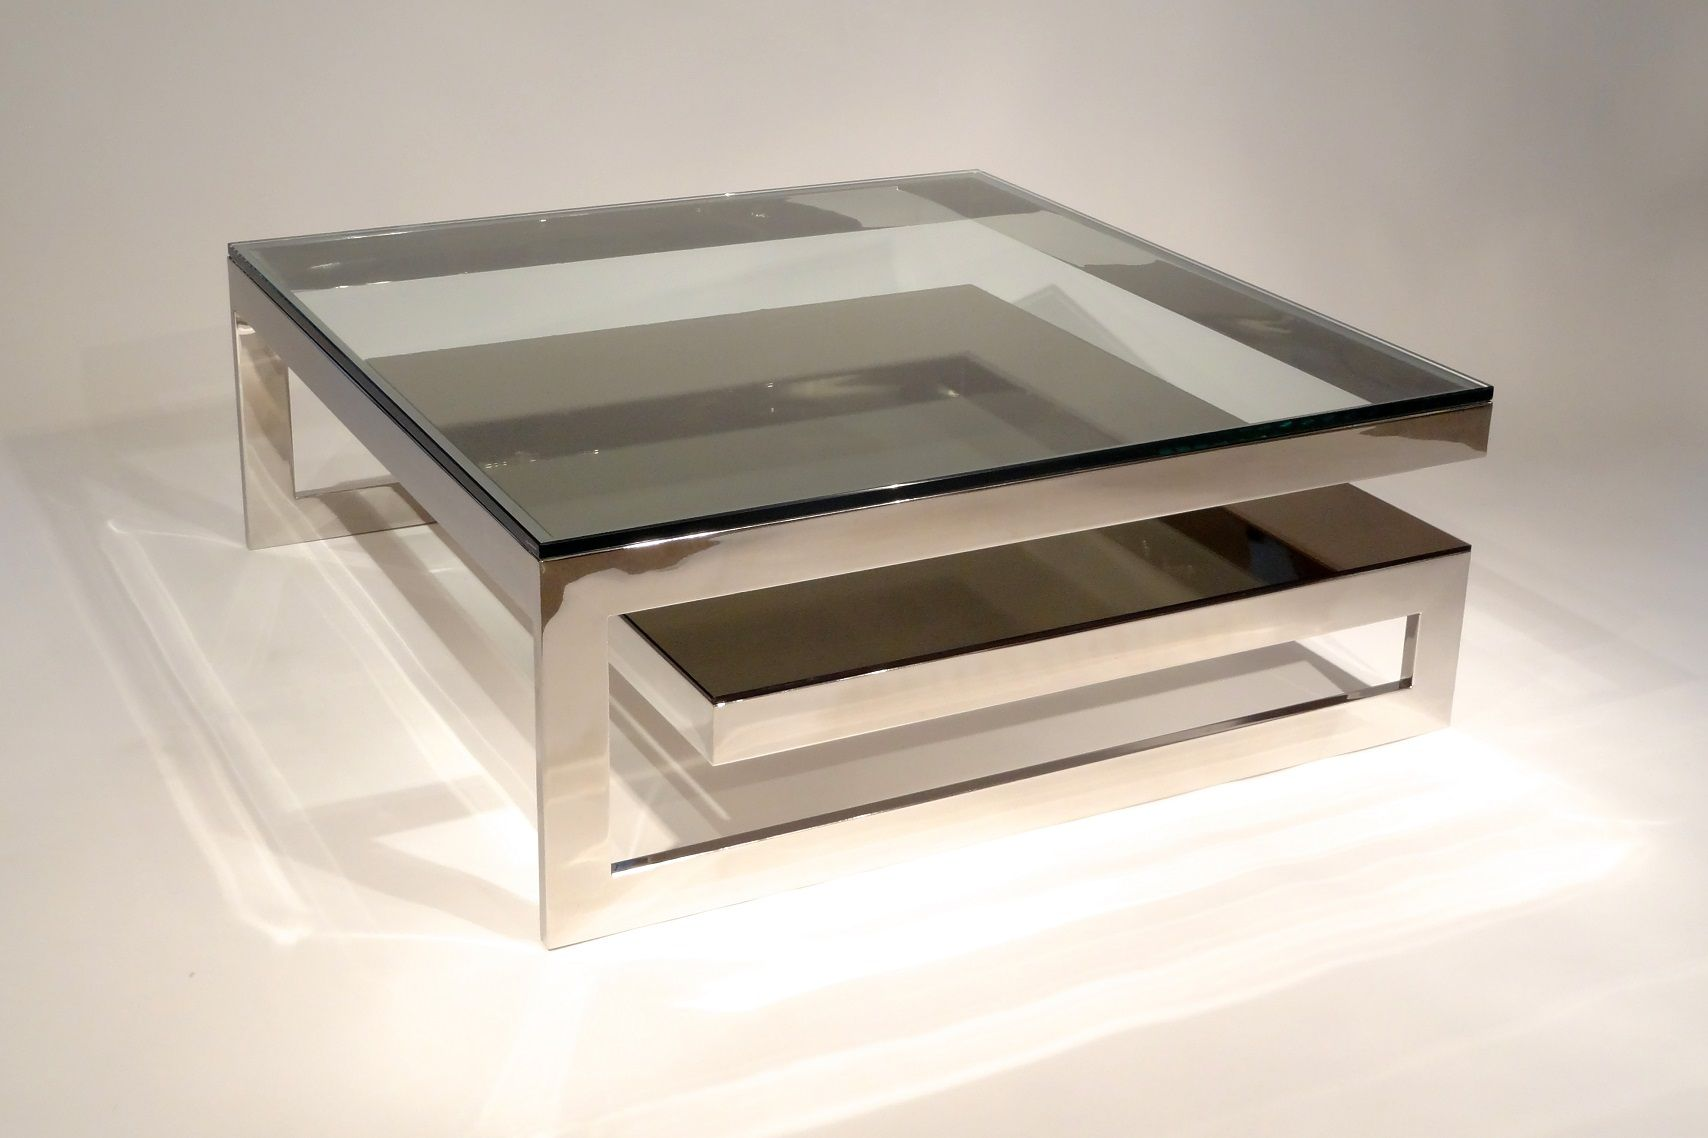 Attractive glass coffee table with stainless steel table legs for attractive glass coffee table with stainless steel table legs for luxury living room furniture idea geotapseo Images